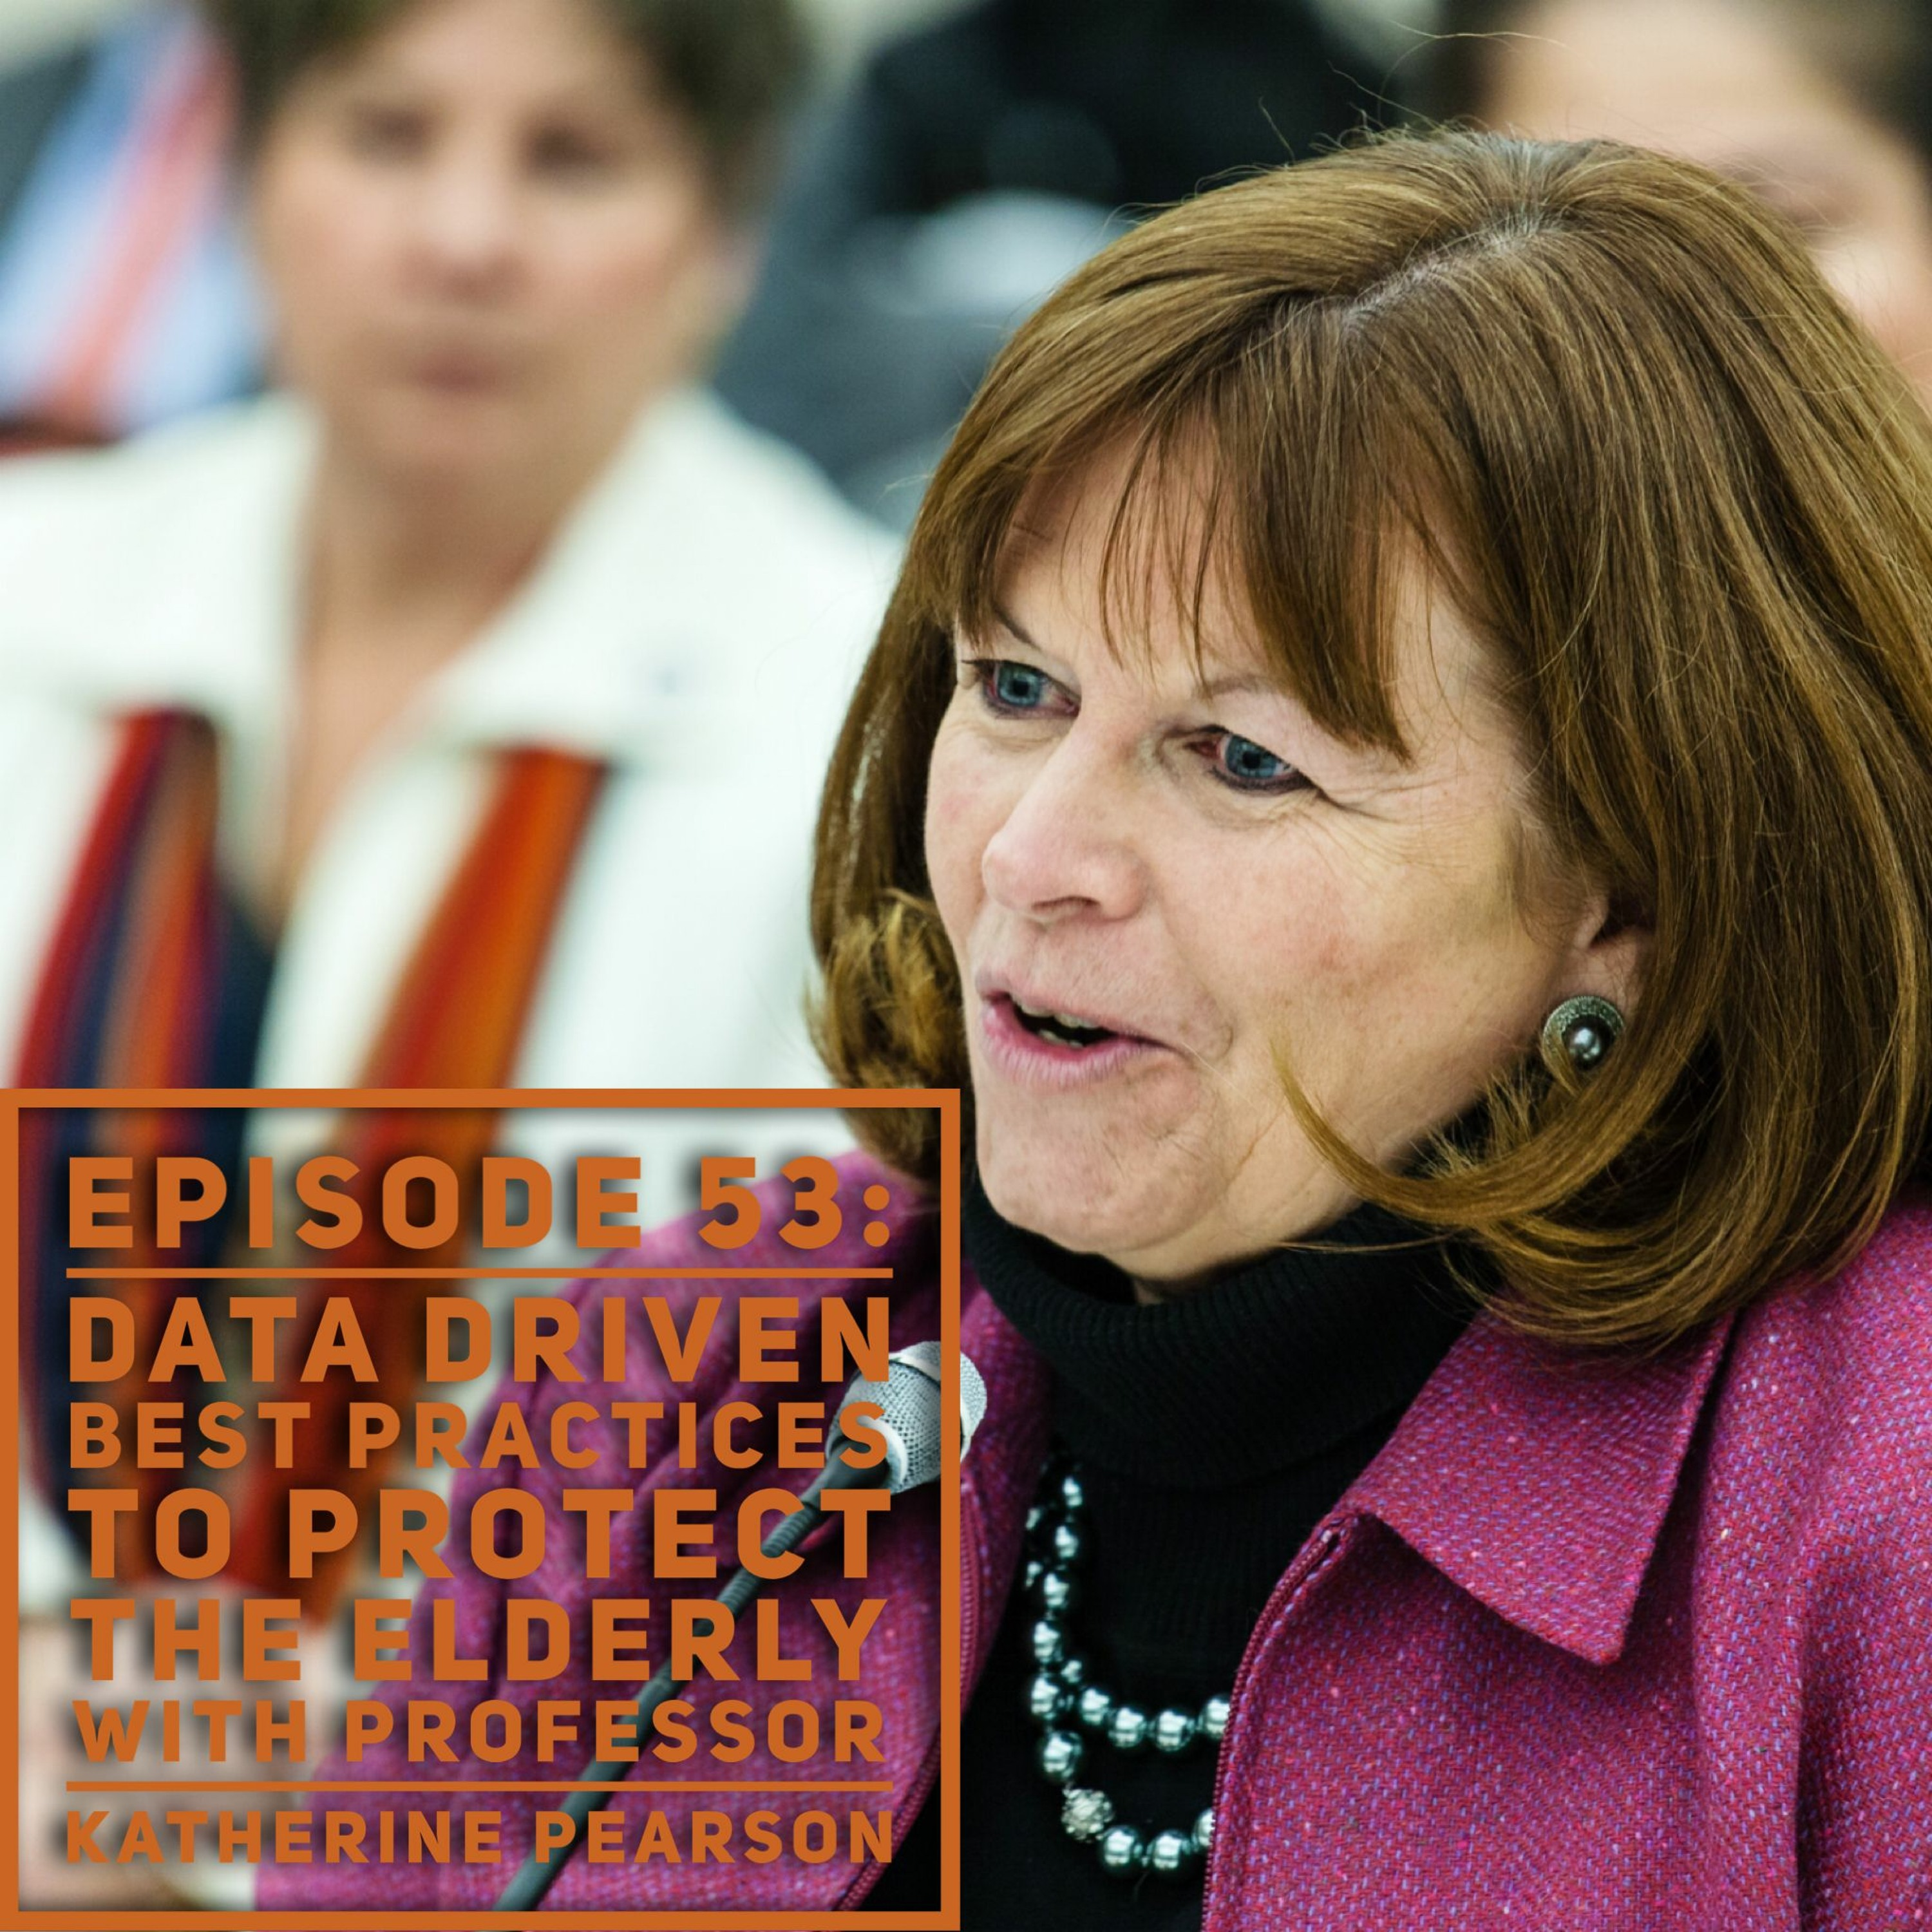 Episode 53: Data Driven Best Practices for Protecting the Elderly with Professor Katherine Pearson